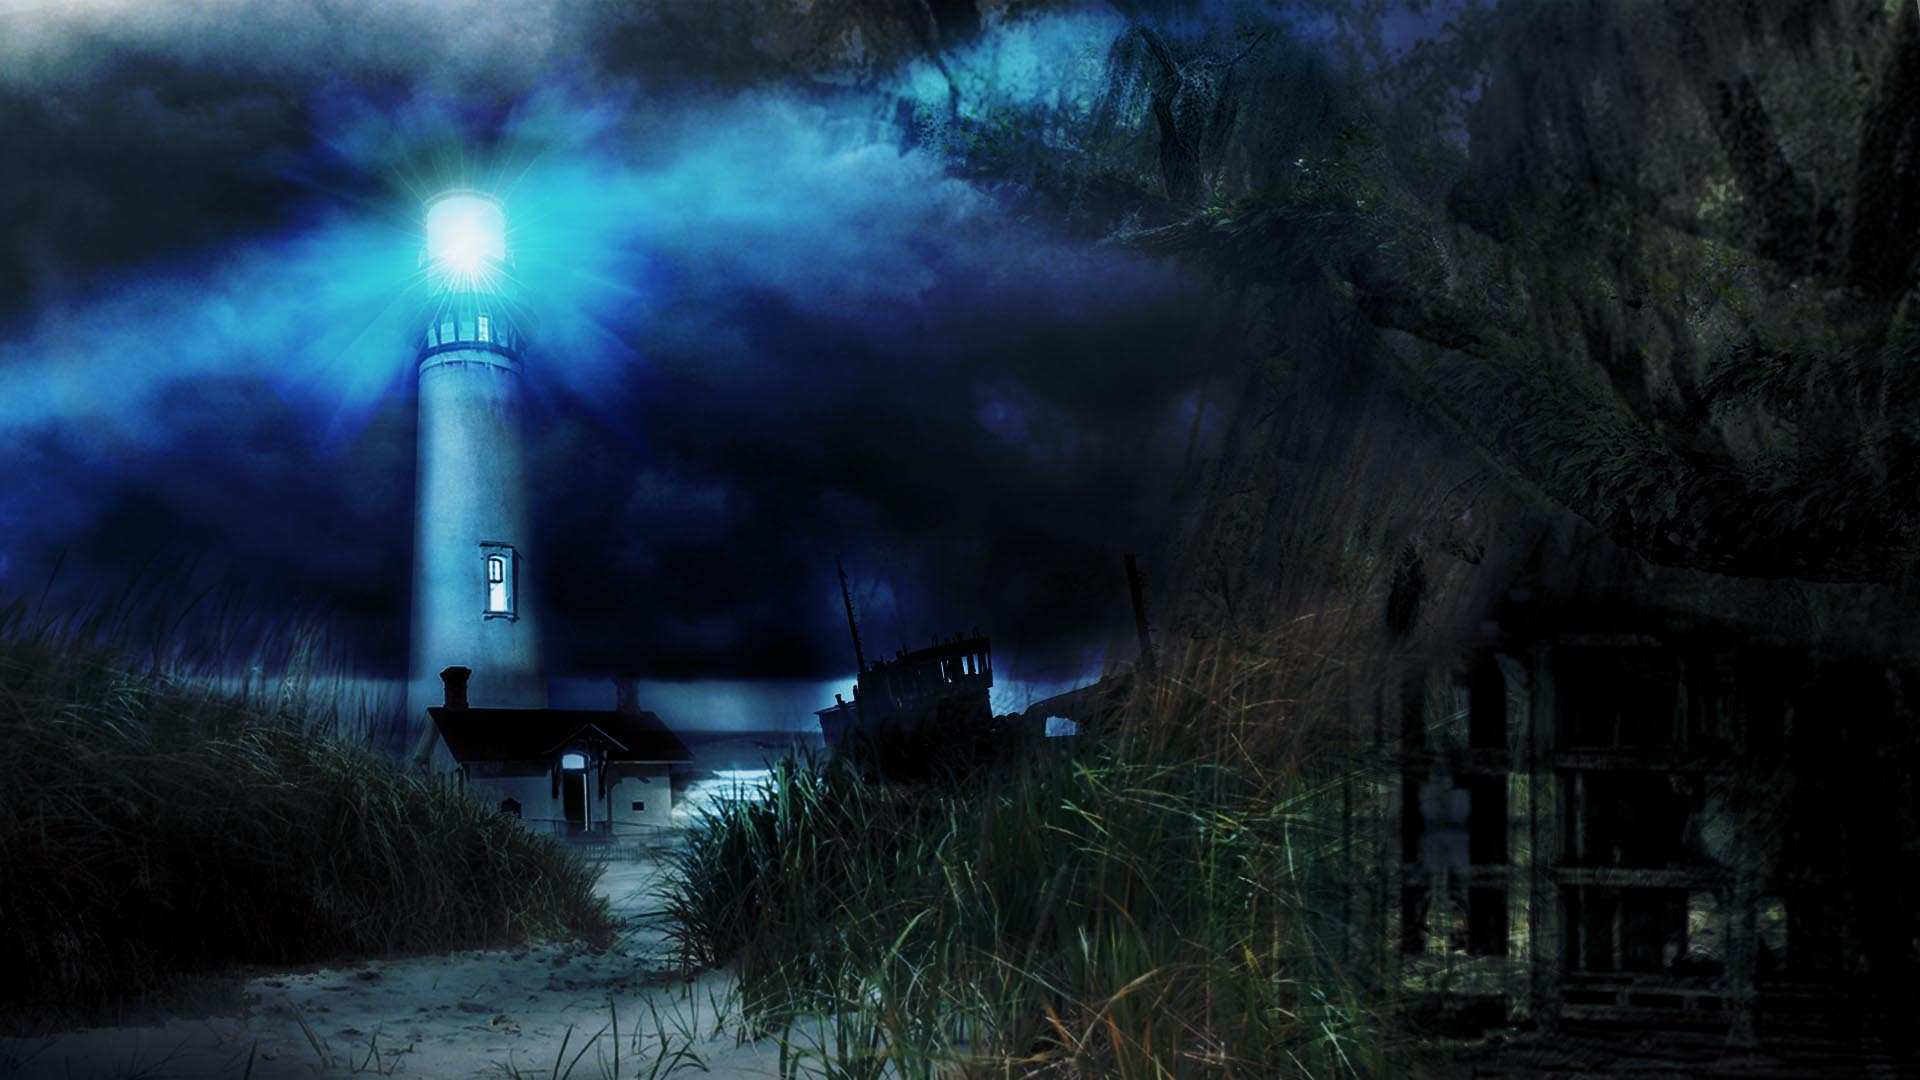 BrandenTolley_lighthouse_01_Narrative (1).jpg